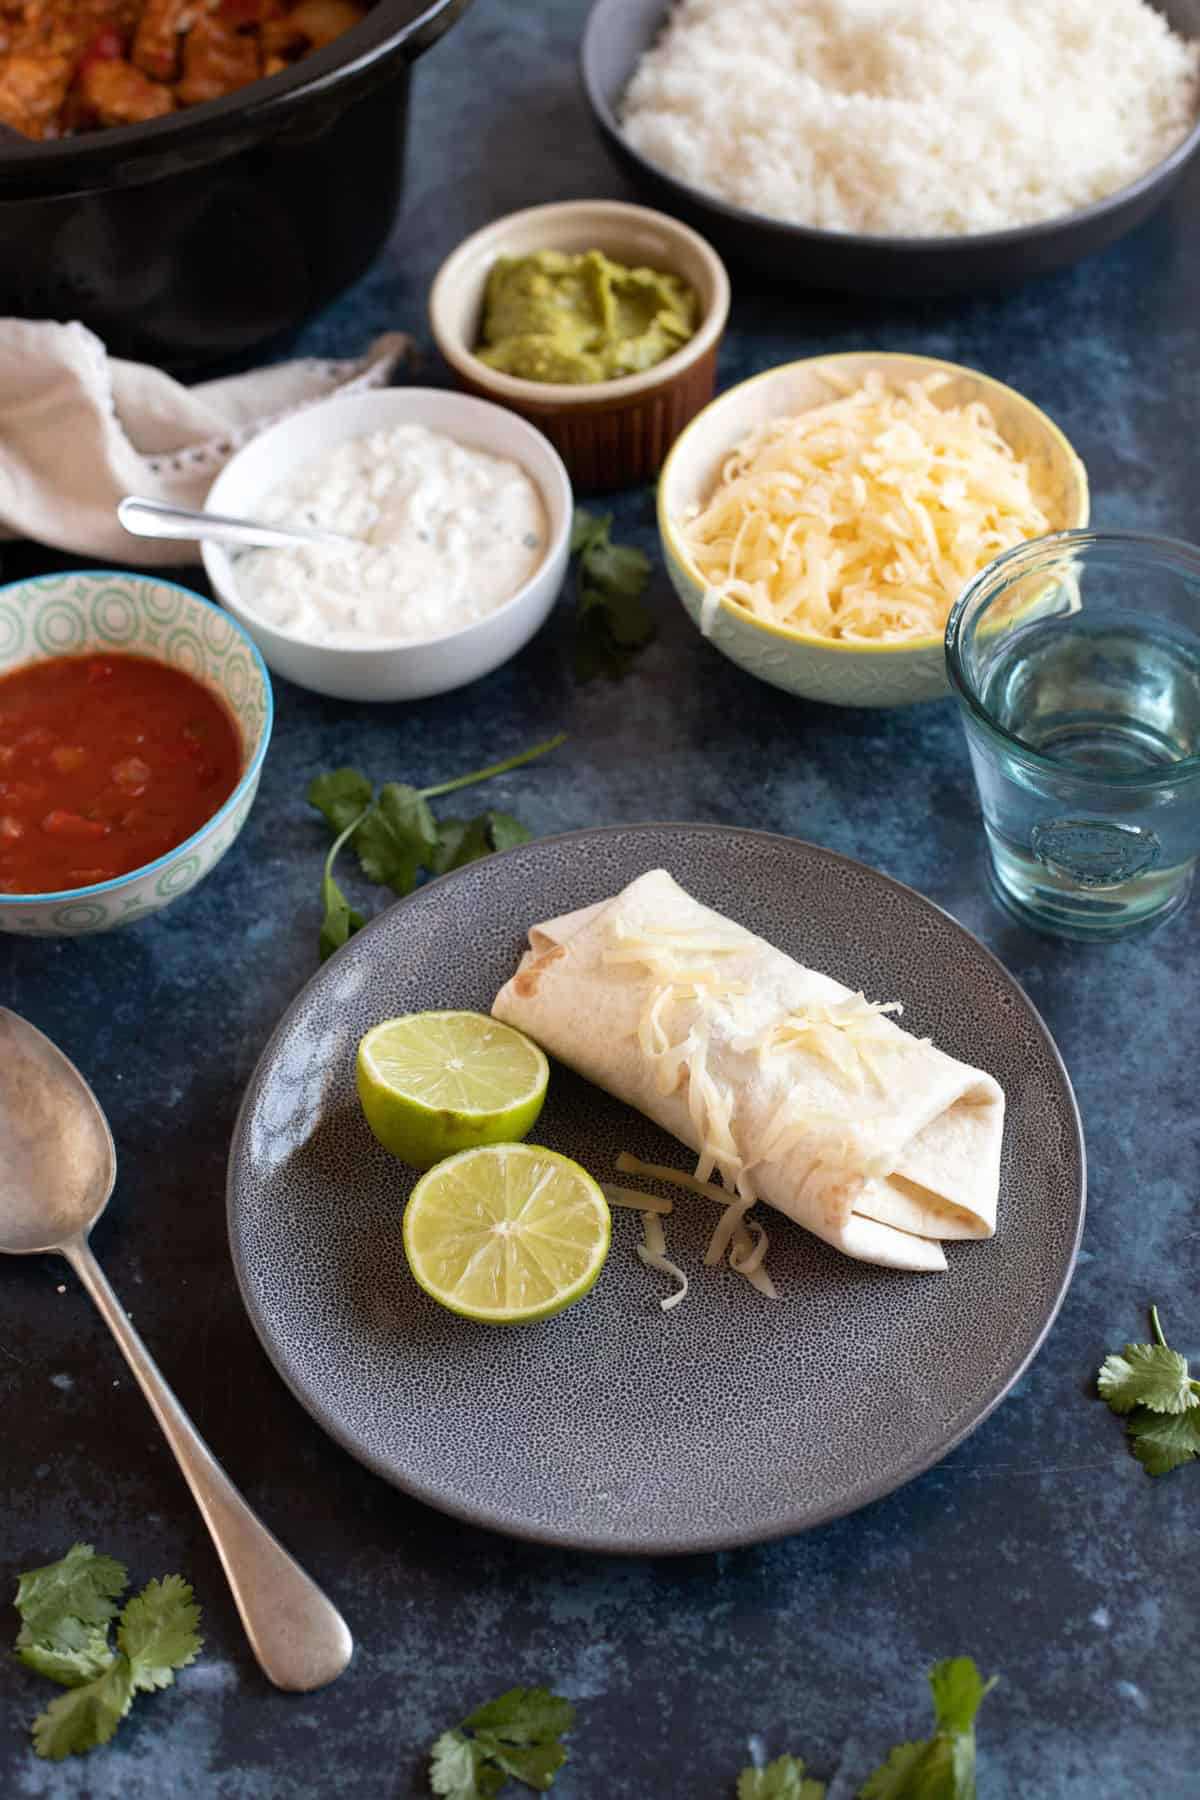 A fajita wrap on a plate with grated cheddar, sour cream and salsa.